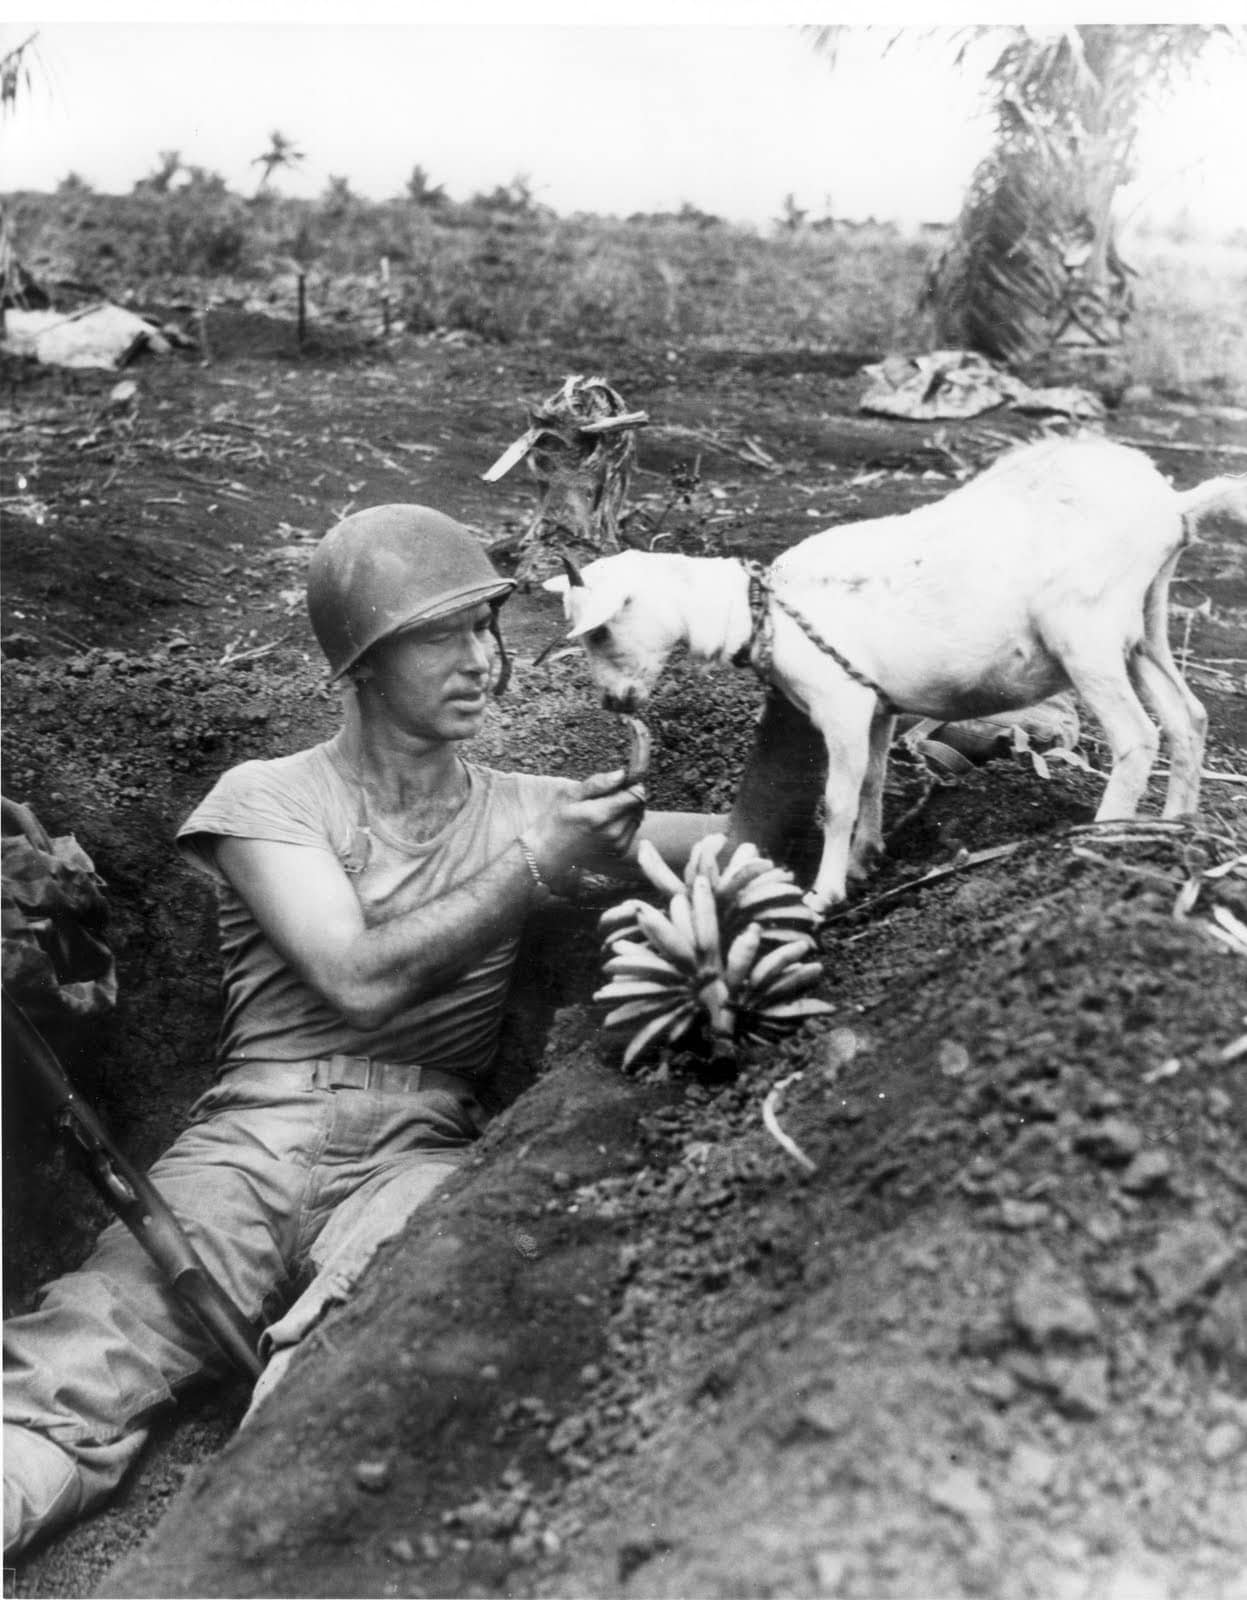 Soldier shares bananas with goat